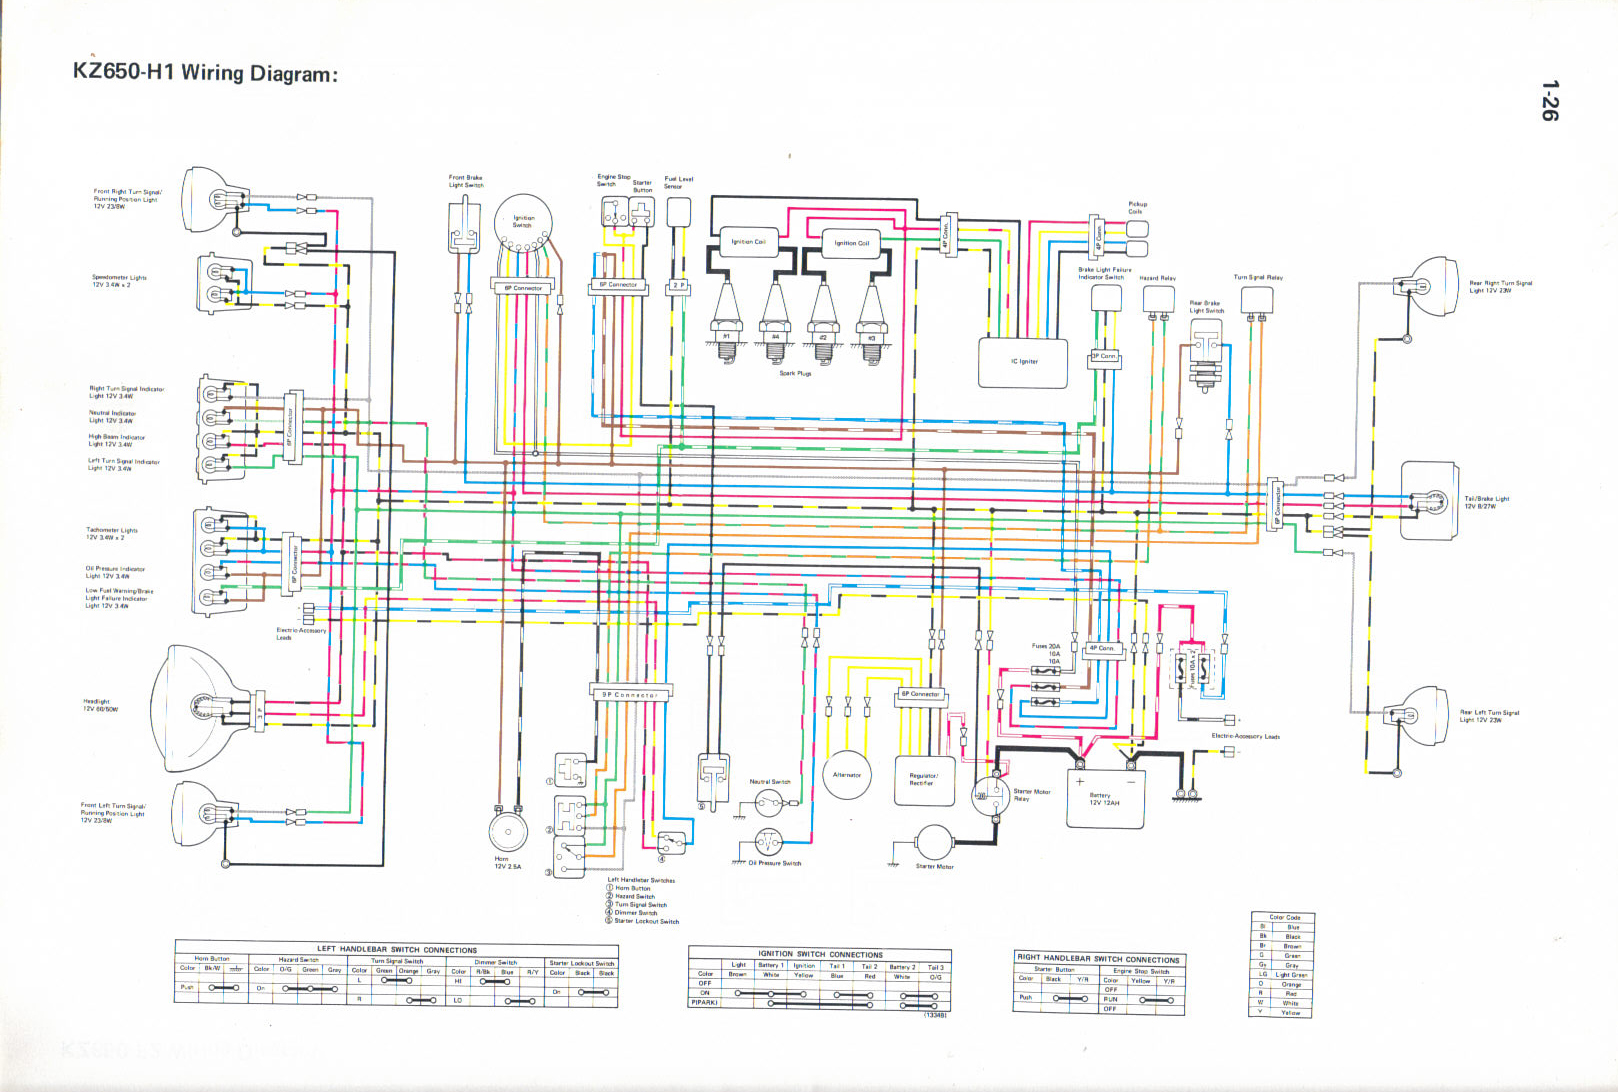 Kz440 Wiring Diagram | Wiring Diagrams on xv920 wiring diagram, er6n wiring diagram, kz400 wiring diagram, fj1100 wiring diagram, vulcan 750 wiring diagram, z1000 wiring diagram, kawasaki wiring diagram, kz1000 wiring diagram, kz900 wiring diagram, kz650 wiring diagram, ke175 wiring diagram, zx600 wiring diagram, gs1000 wiring diagram, vulcan 1500 wiring diagram, zl1000 wiring diagram, ninja 250r wiring diagram, xj550 wiring diagram, kz200 wiring diagram, ex250 wiring diagram, xs850 wiring diagram,